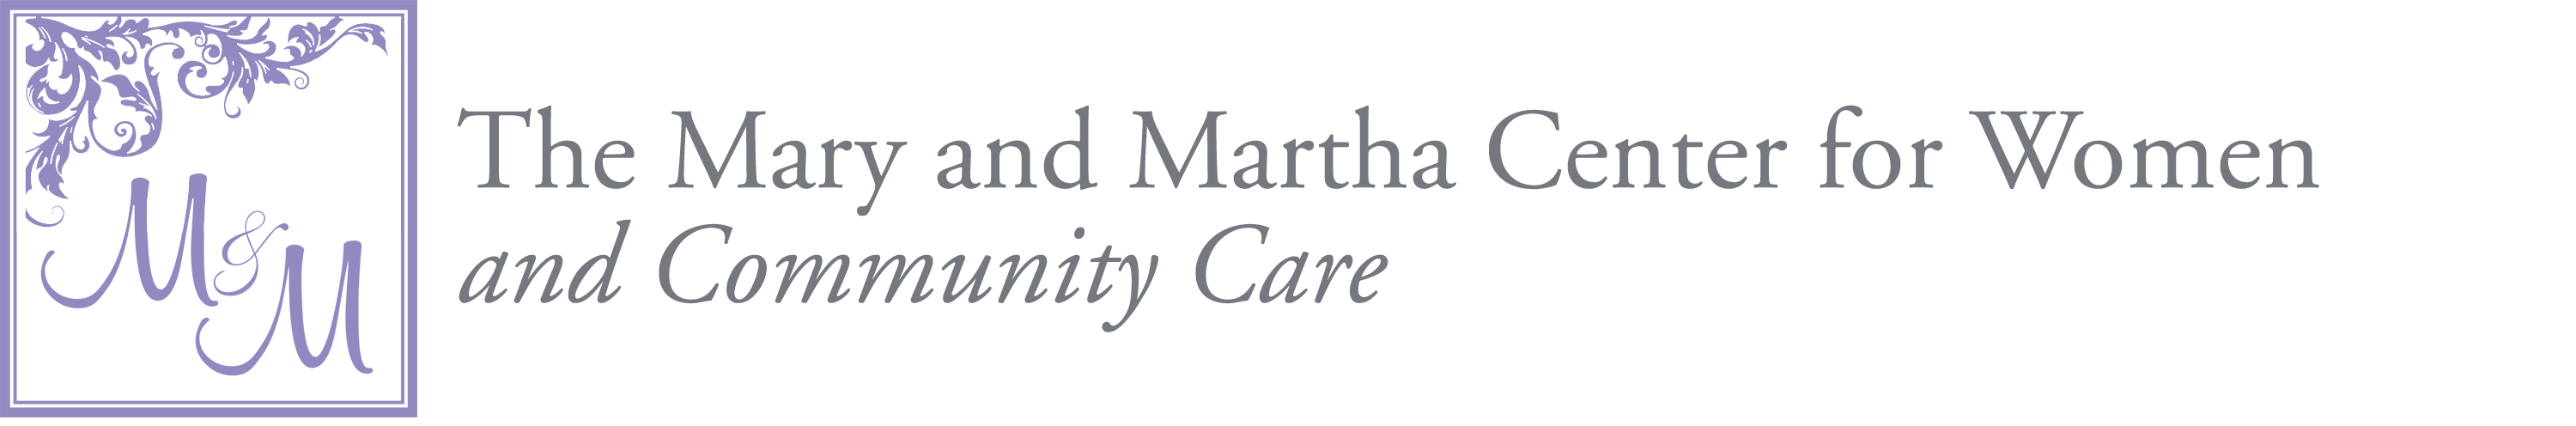 The Mary and Martha Center for Women and Community Care